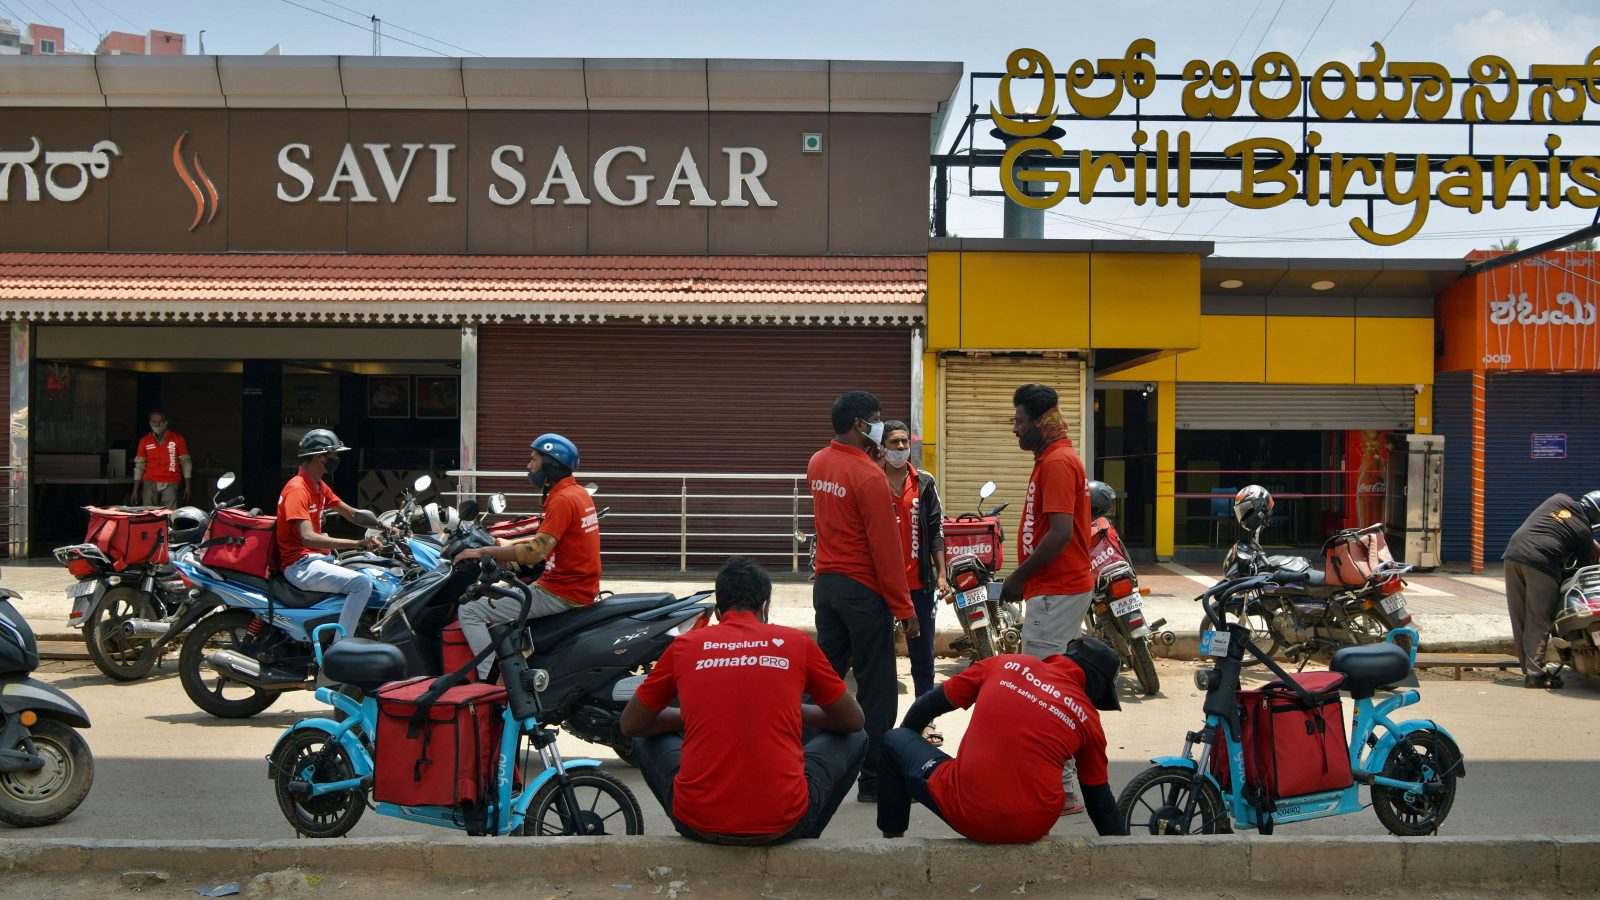 India's restaurants say they feel trapped under Zomato's control